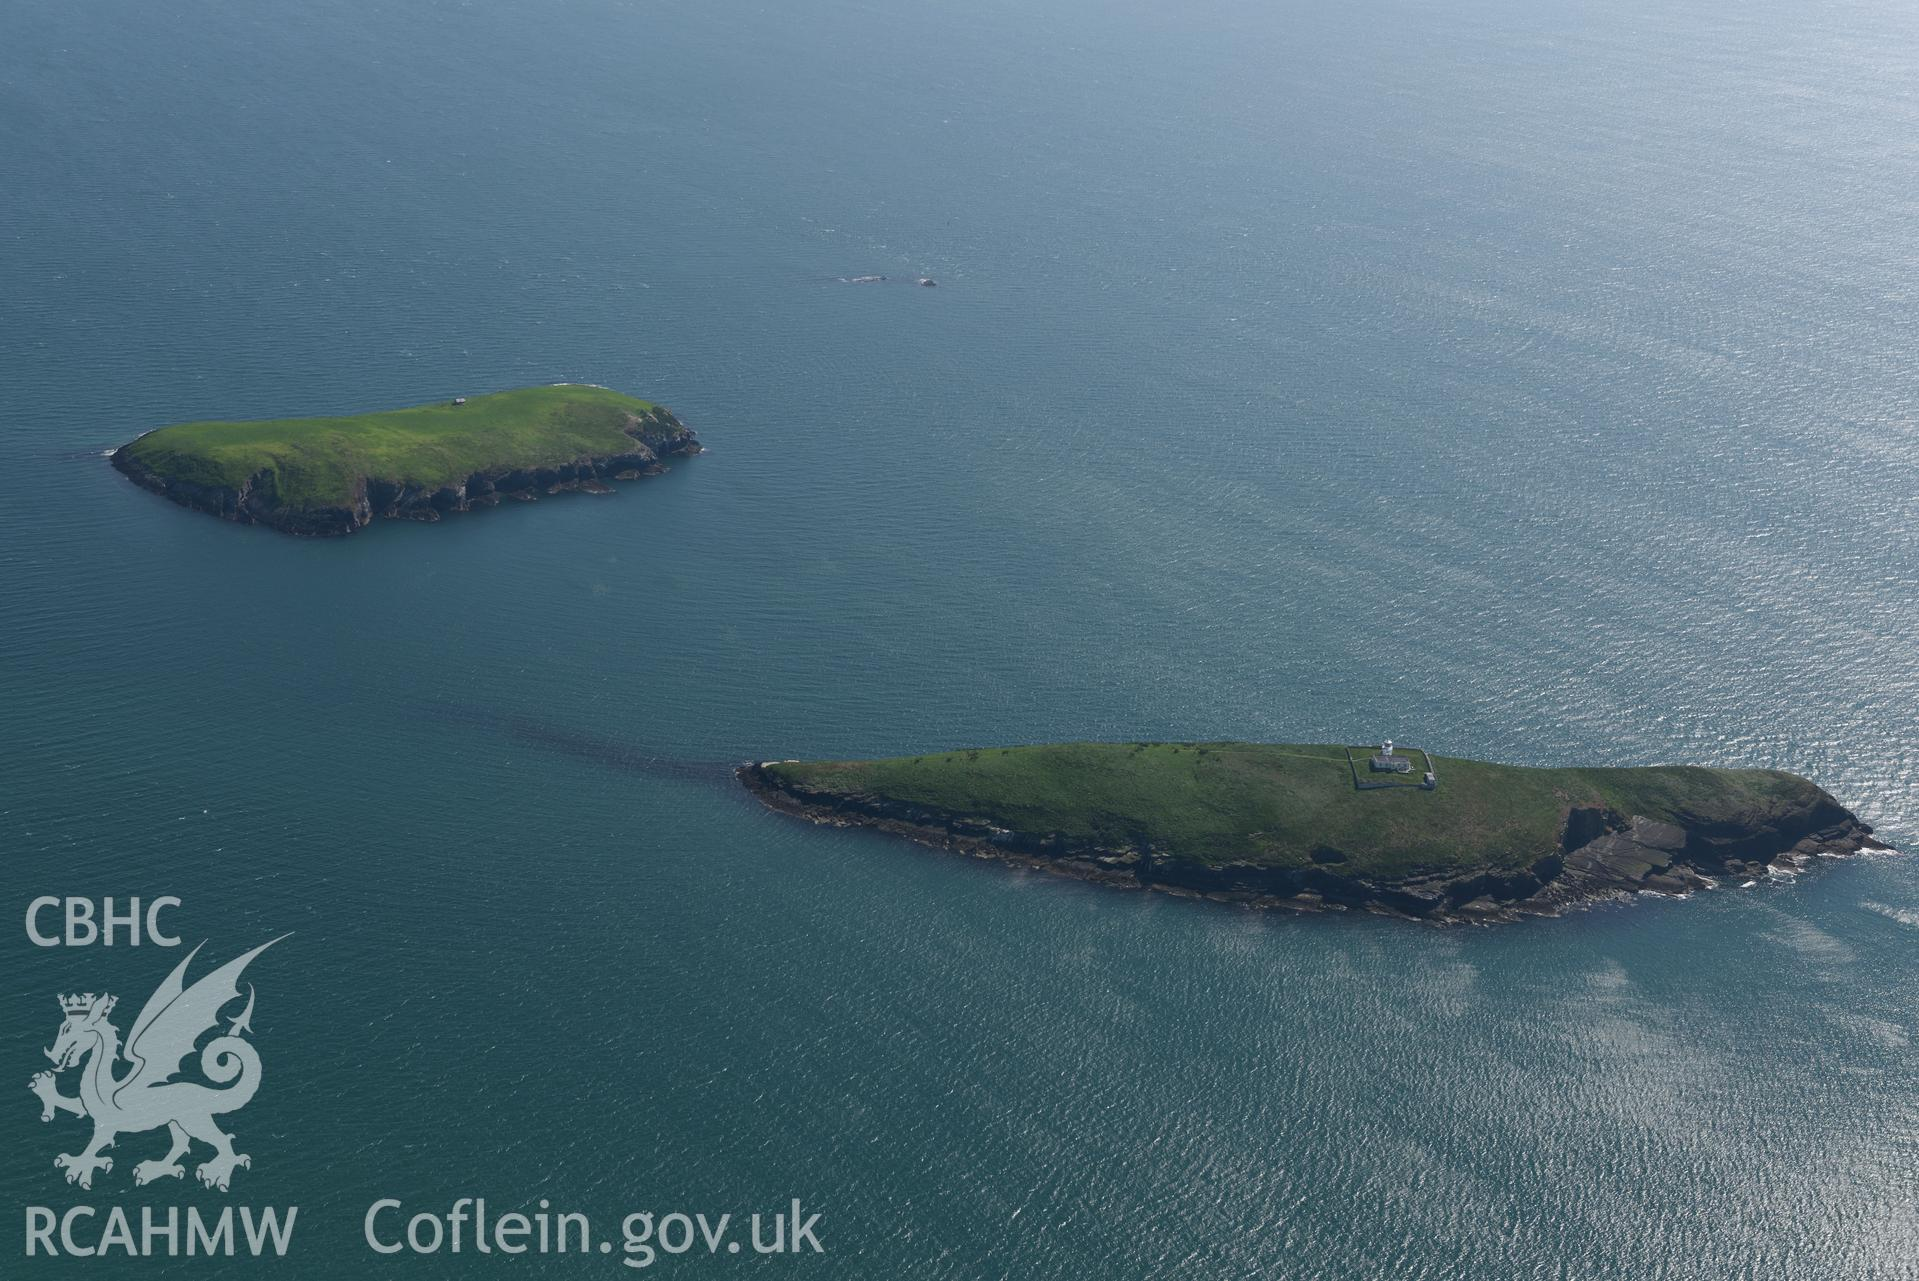 Aerial photography of The Tudwal's Islands taken on 3rd May 2017.  Baseline aerial reconnaissance survey for the CHERISH Project. ? Crown: CHERISH PROJECT 2017. Produced with EU funds through the Ireland Wales Co-operation Programme 2014-2020. All material made freely available through the Open Government Licence.